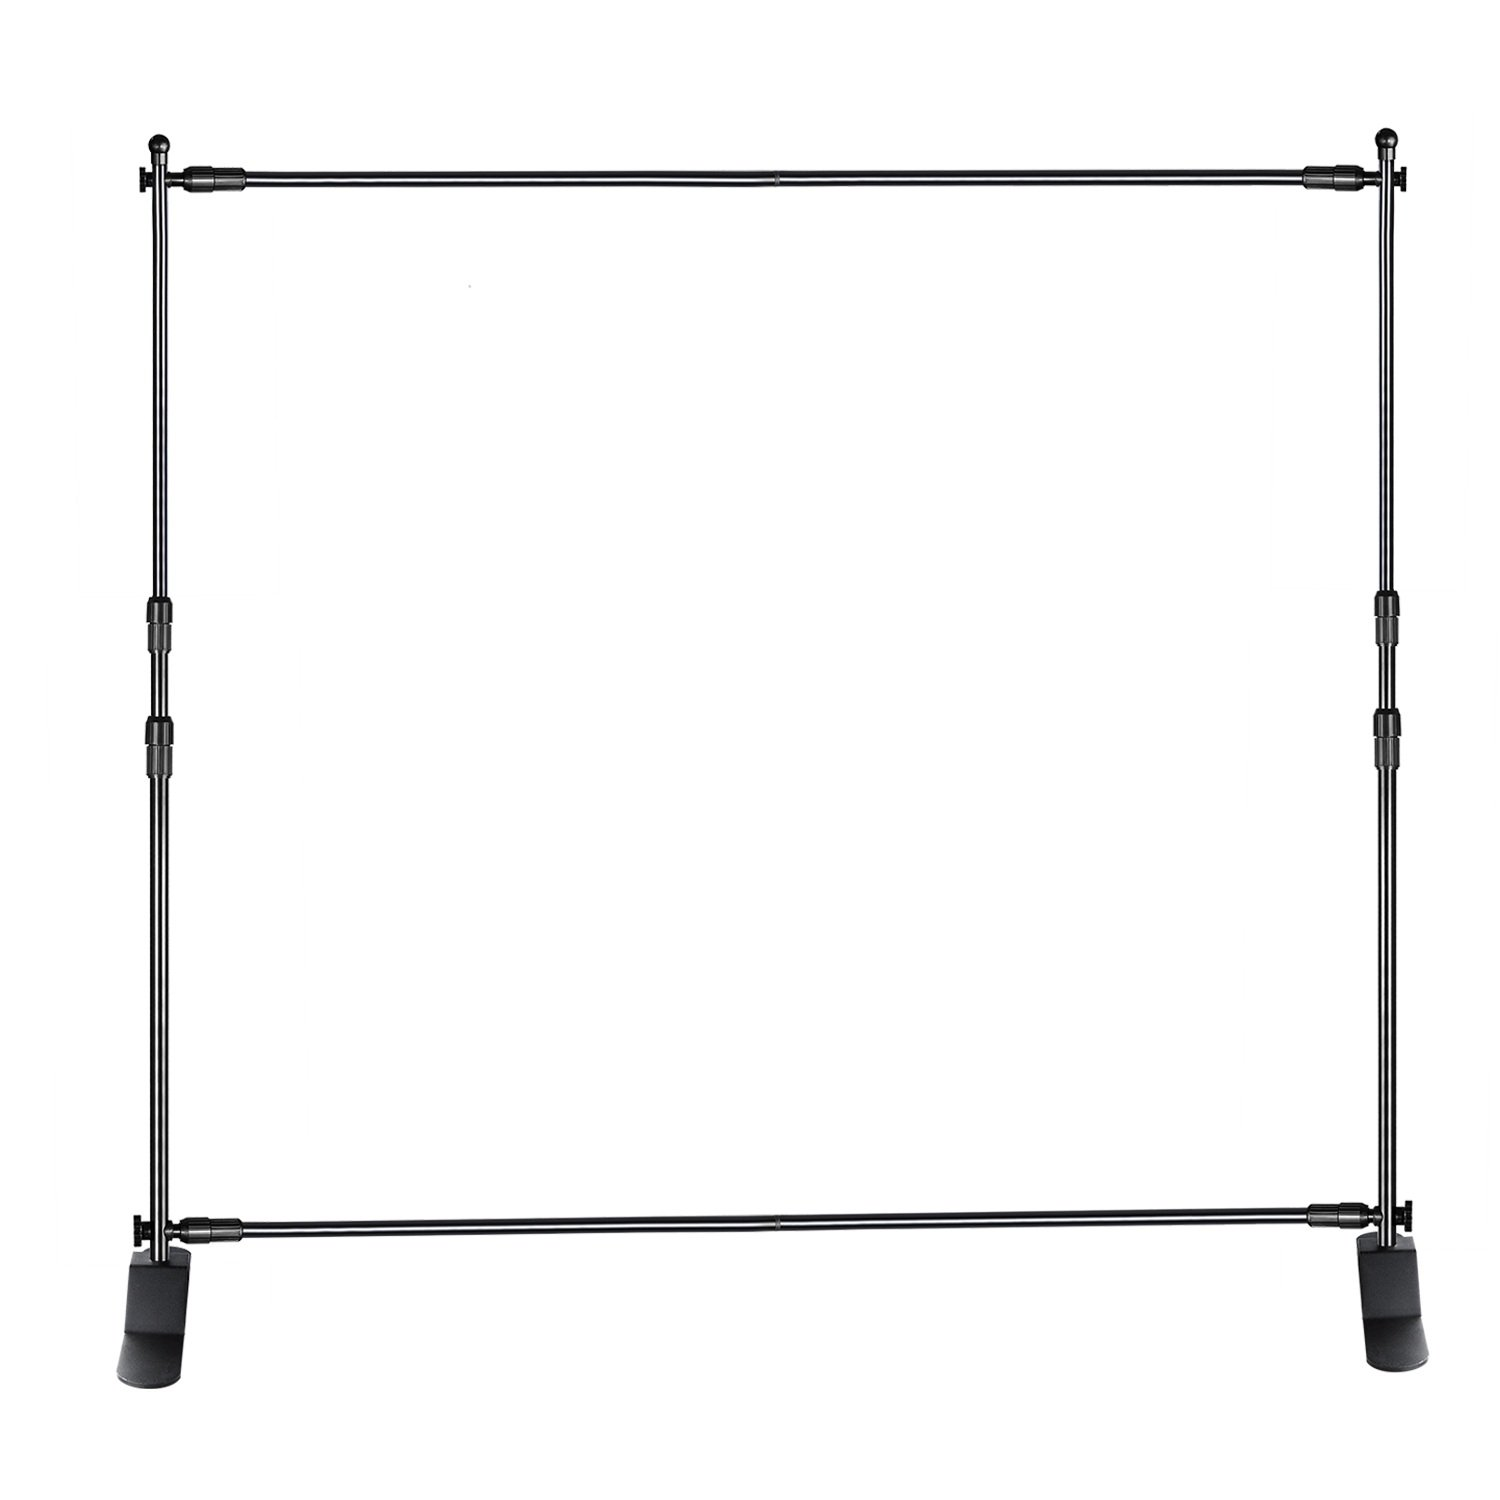 Neewer Telescopic Tube Background Support Pole and Stand with Heavy Duty Base for Photography Backdrop and Trade Show Display, 10 x 8 feet Adjustable Frame (W x H), Aluminum Alloy by Neewer